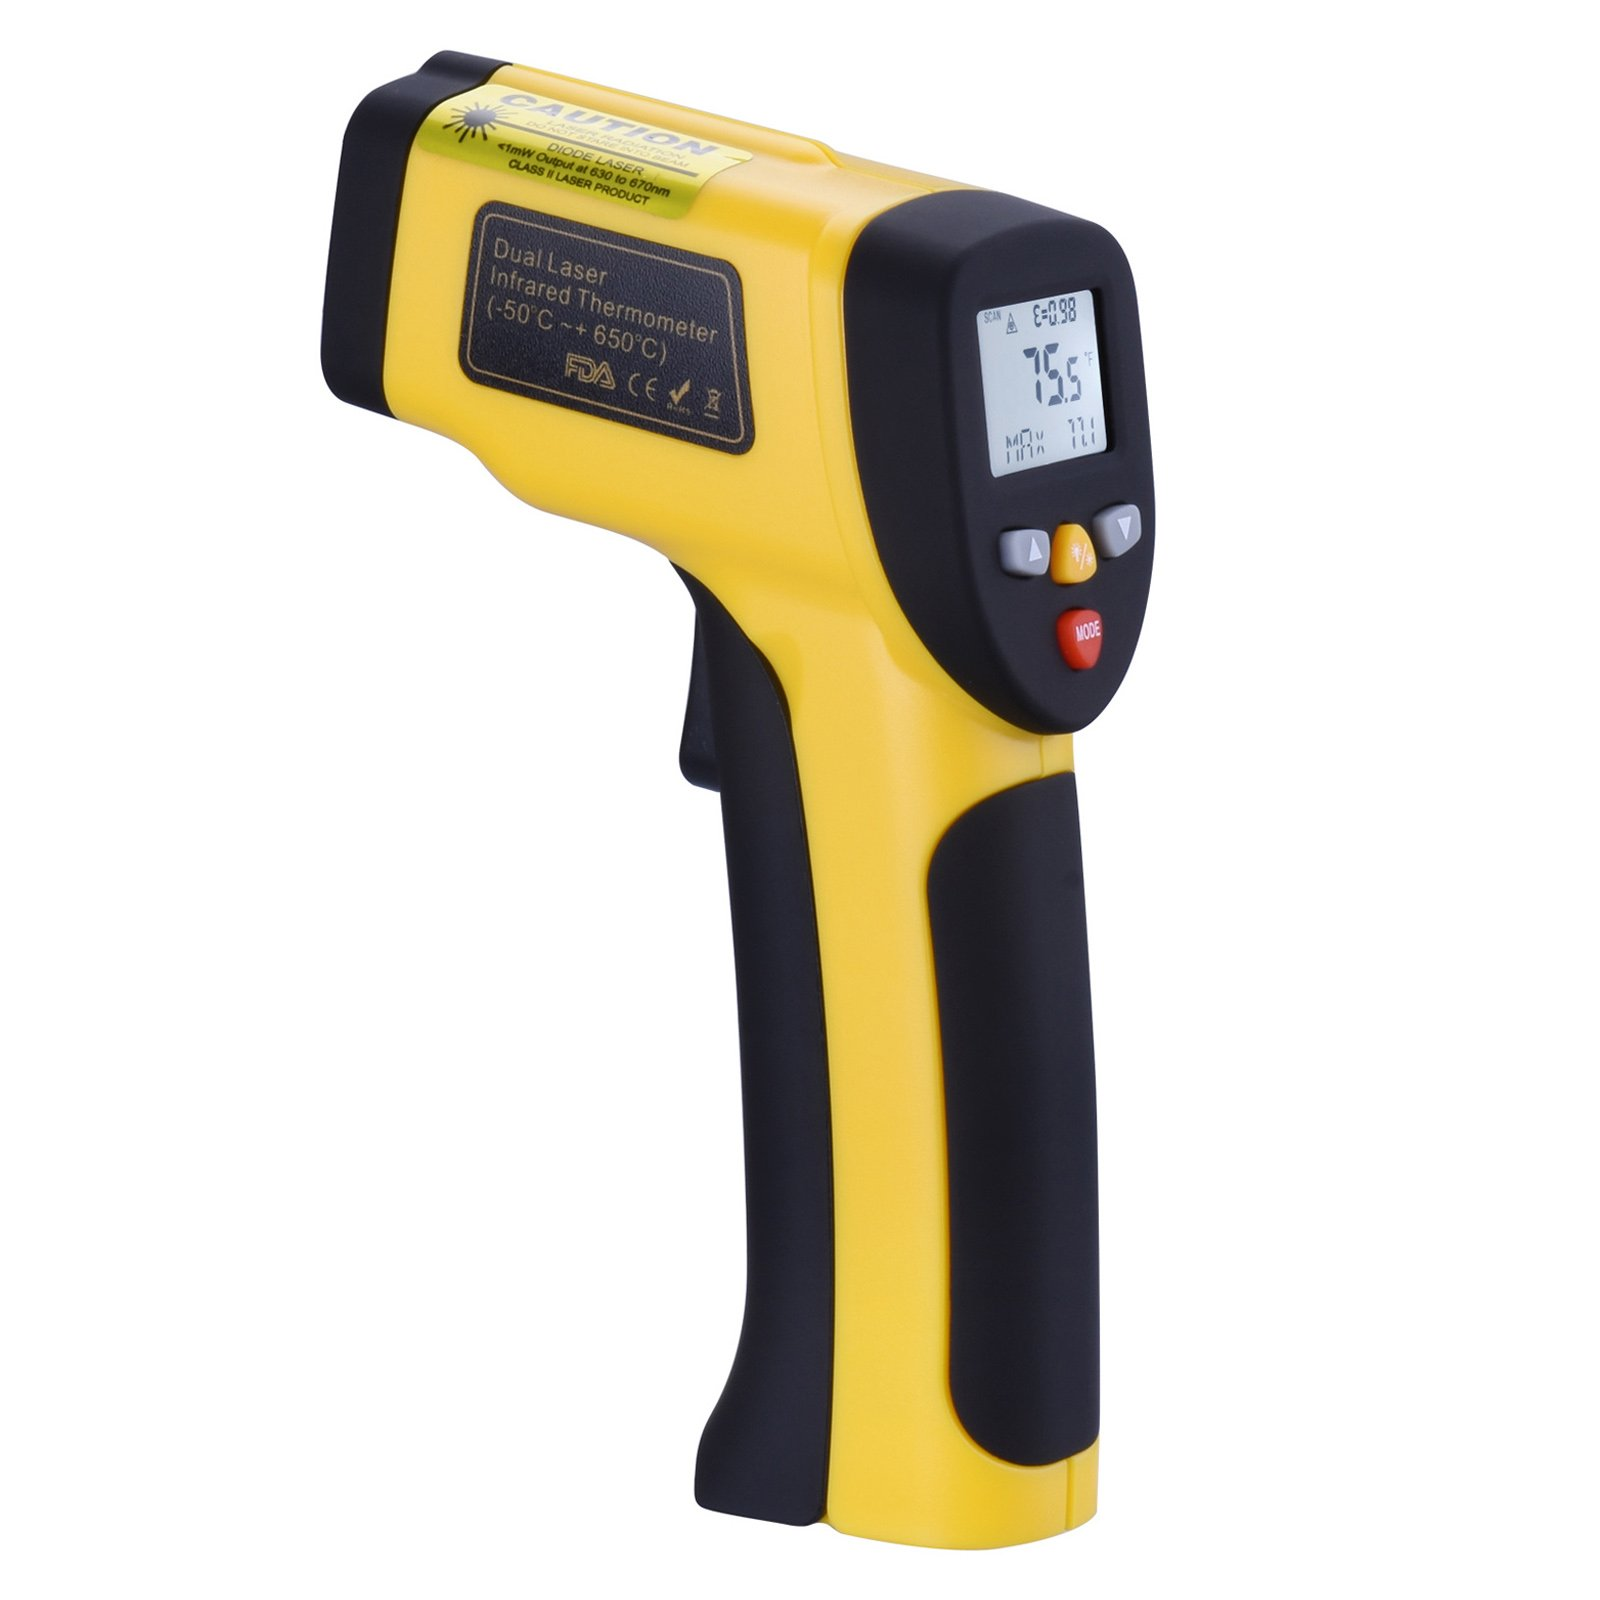 Infrared Thermometer, Tensun Dual Laser Thermometer Temperature Gun Non-contact Surface Digital IR Thermometer -58℉~1202℉ (-50℃ to 650℃) Instant Read Handheld with Adjustable Emissivity by Tensun